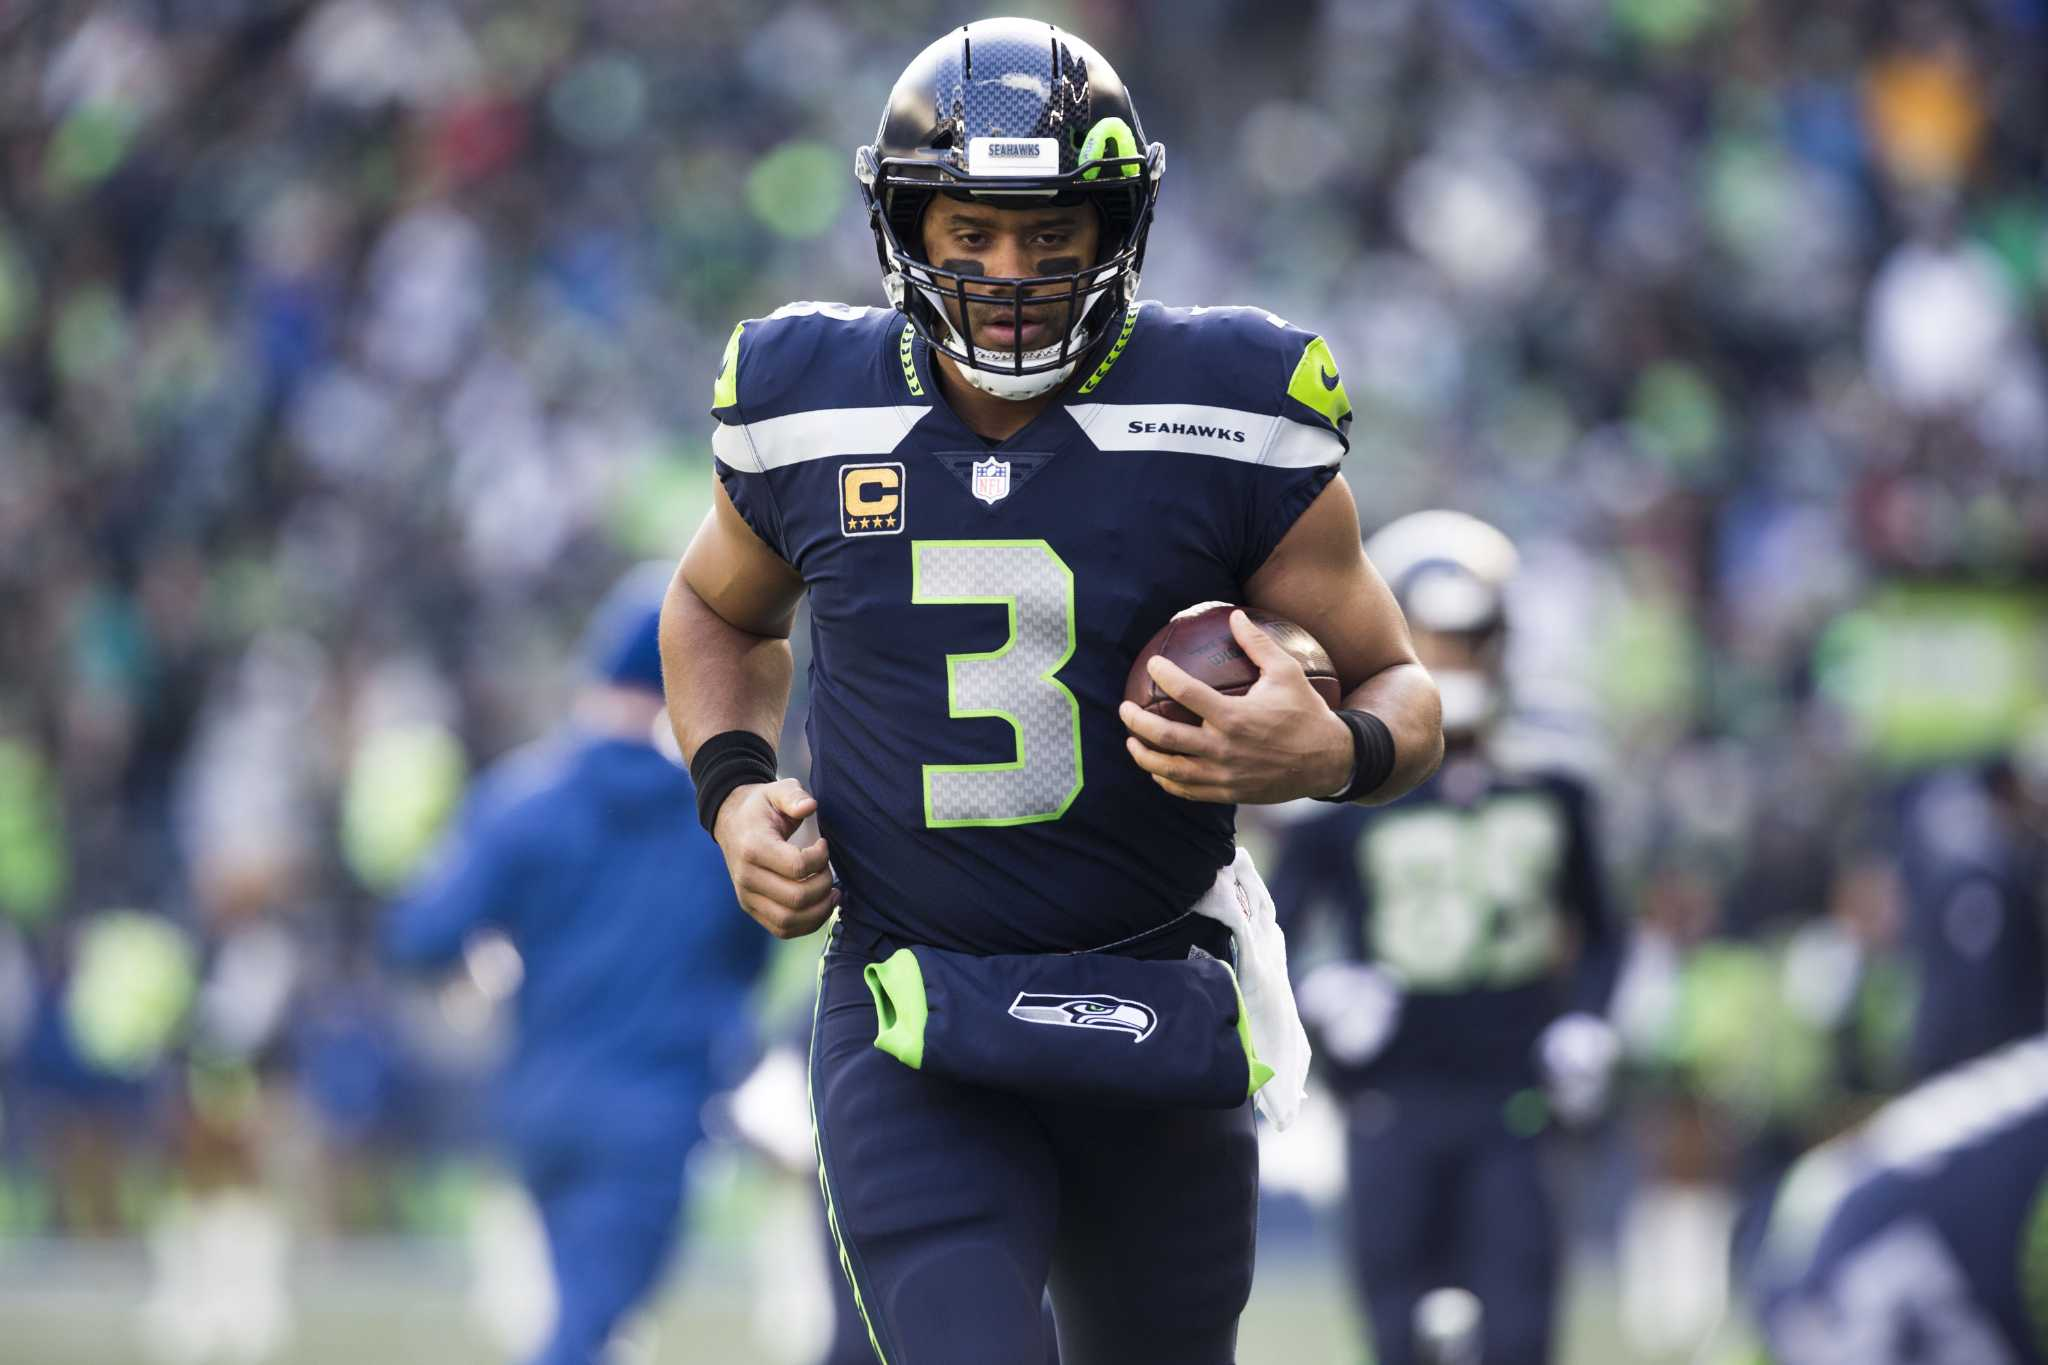 seahawks russell wilson excited to play in london